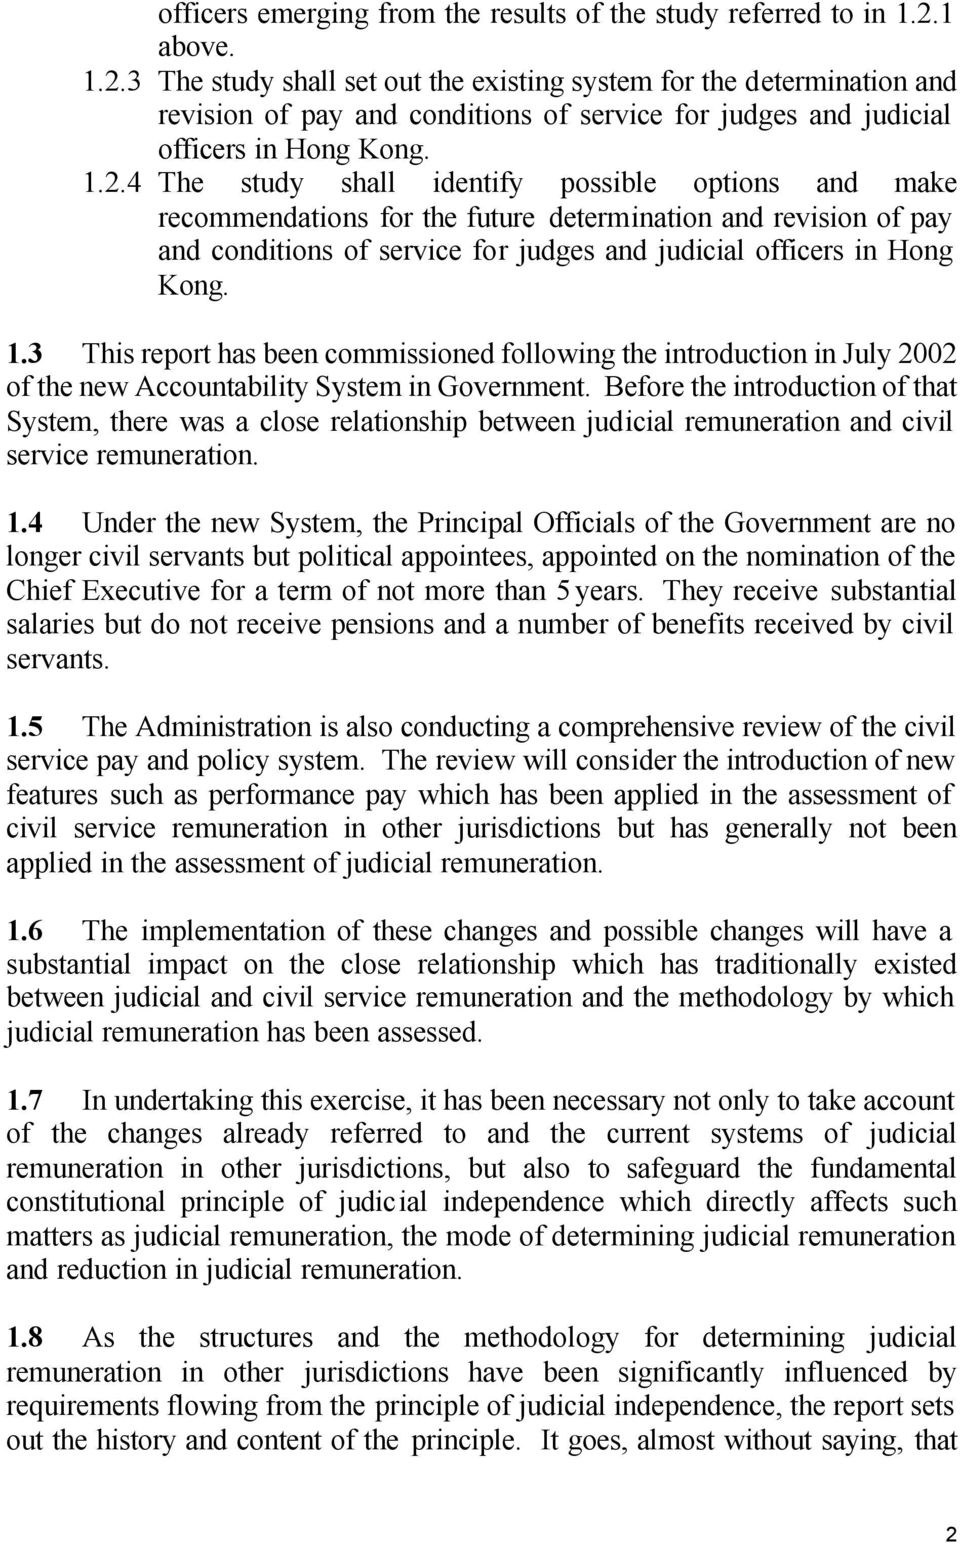 3 The study shall set out the existing system for the determination and revision of pay and conditions of service for judges and judicial officers in Hong Kong. 1.2.